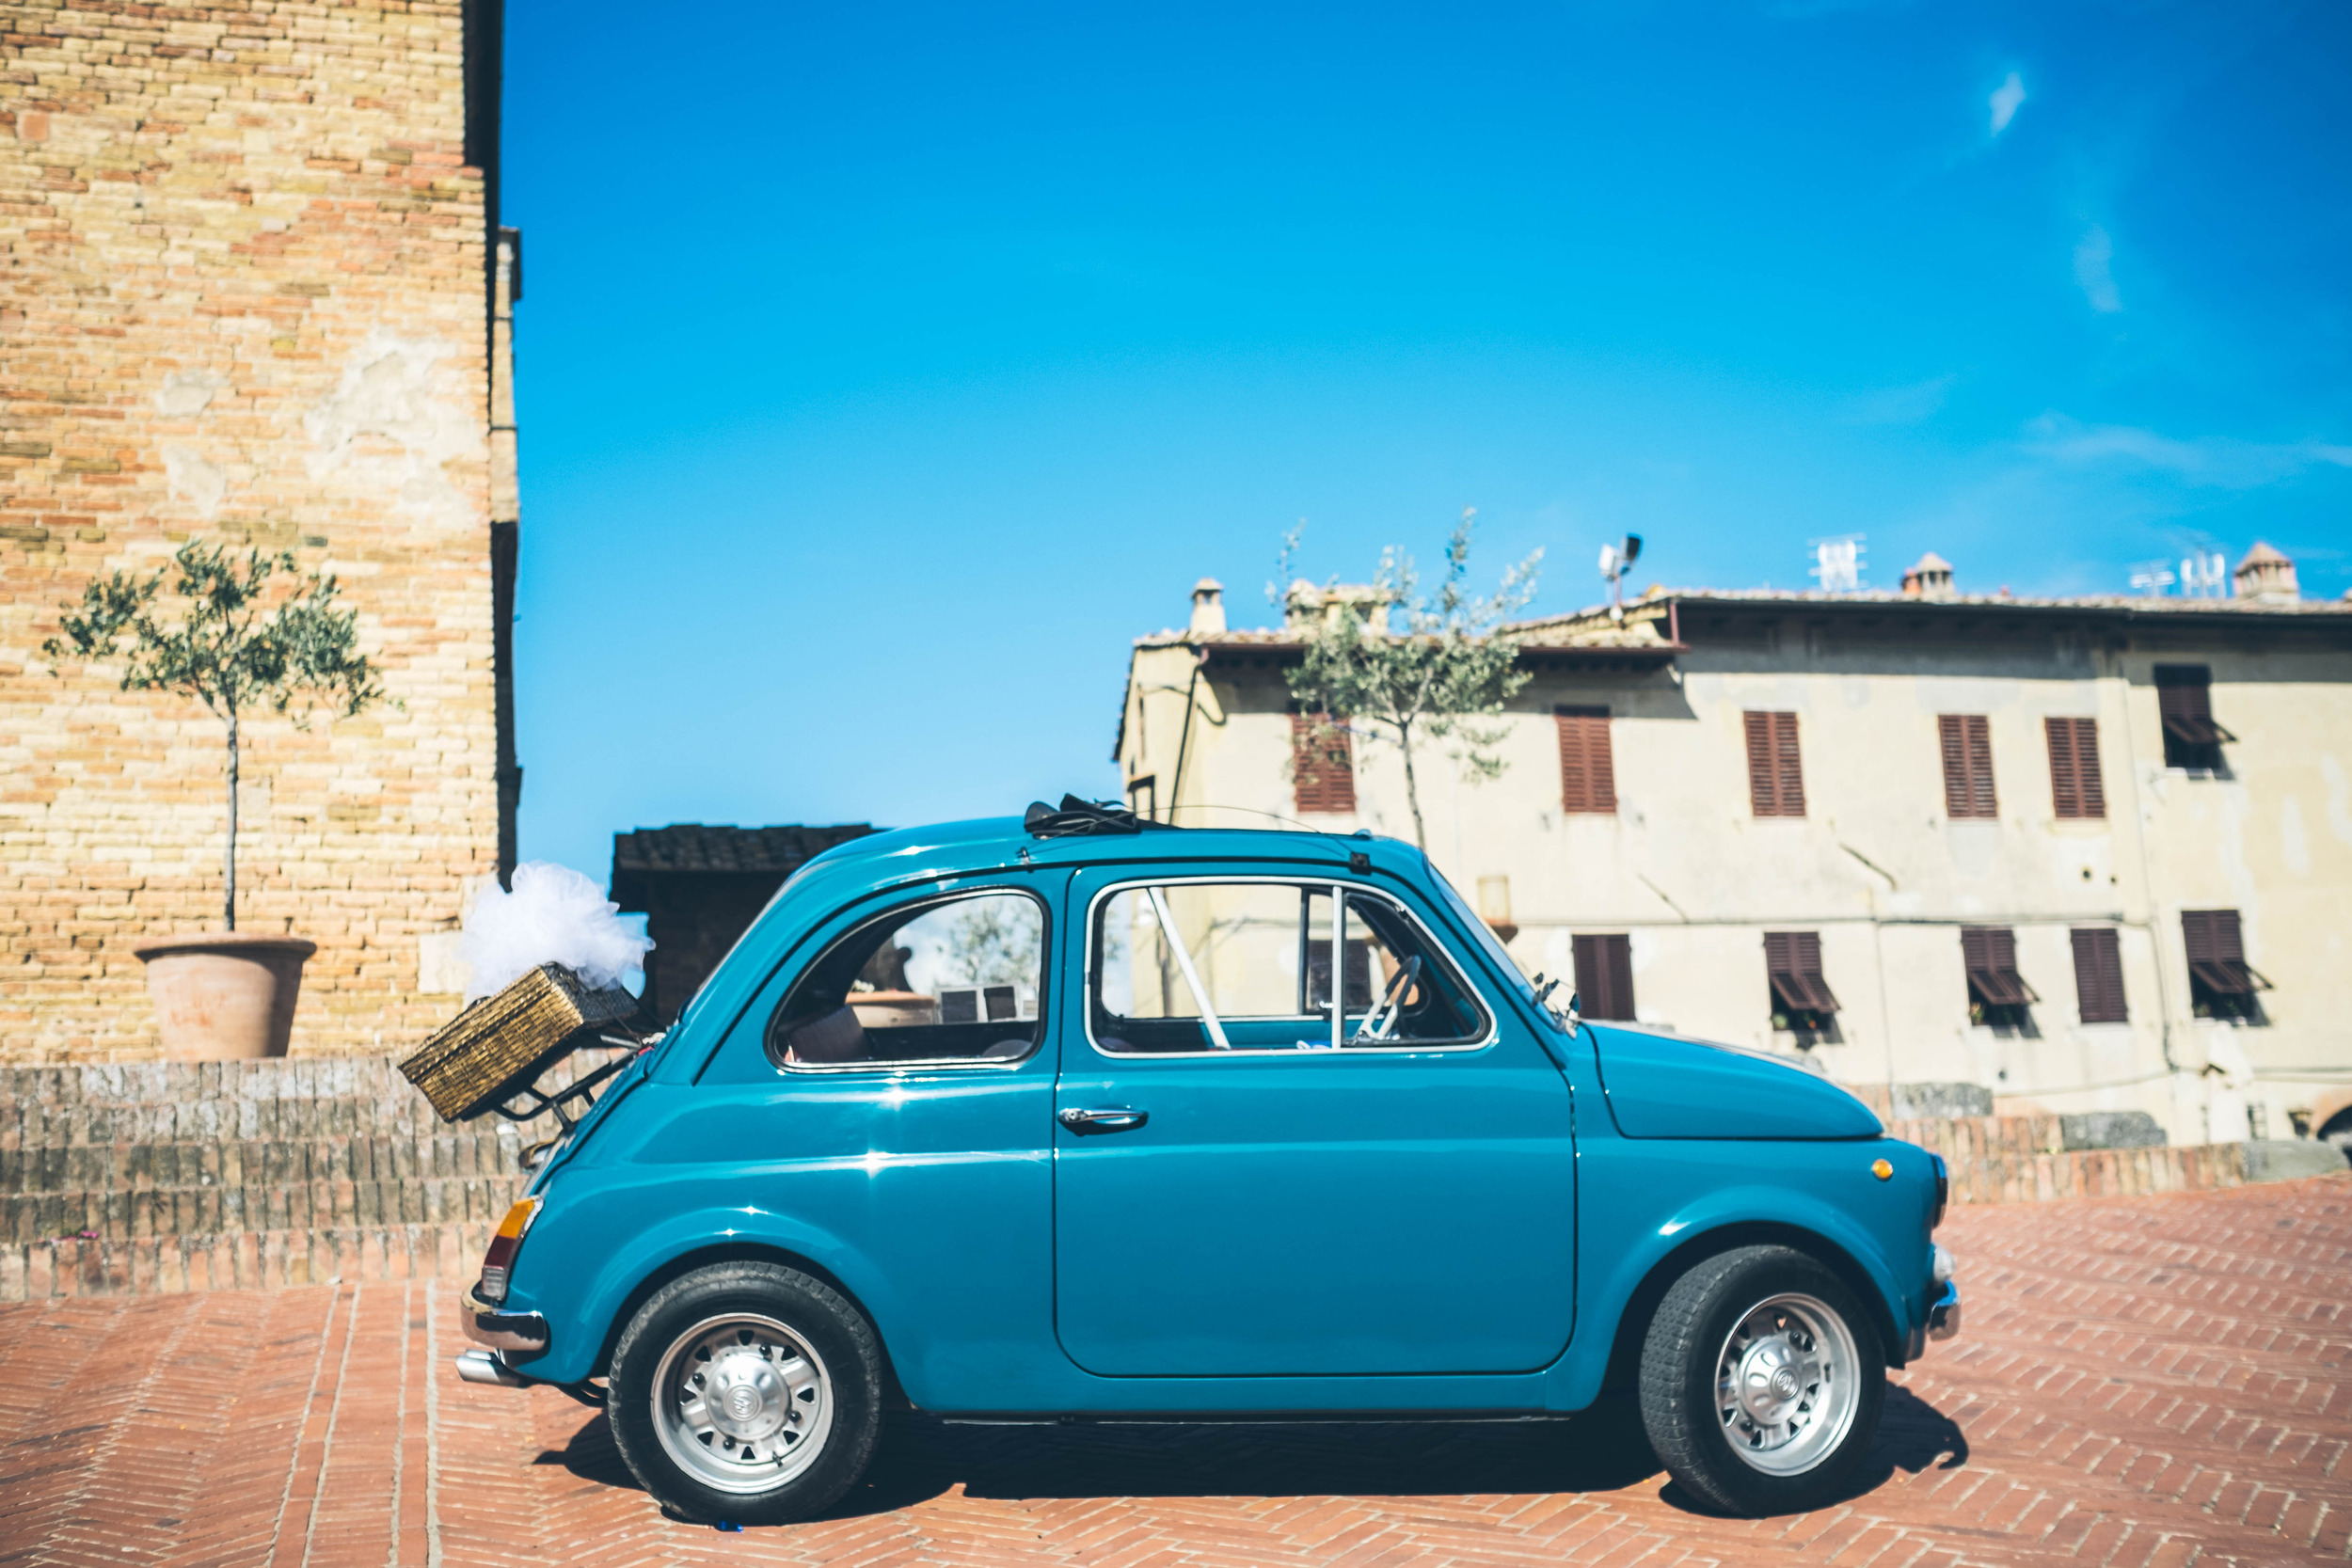 We stumbled across a wedding in San Gimignano; this was the wedding car - a vintage Fiat Nuova